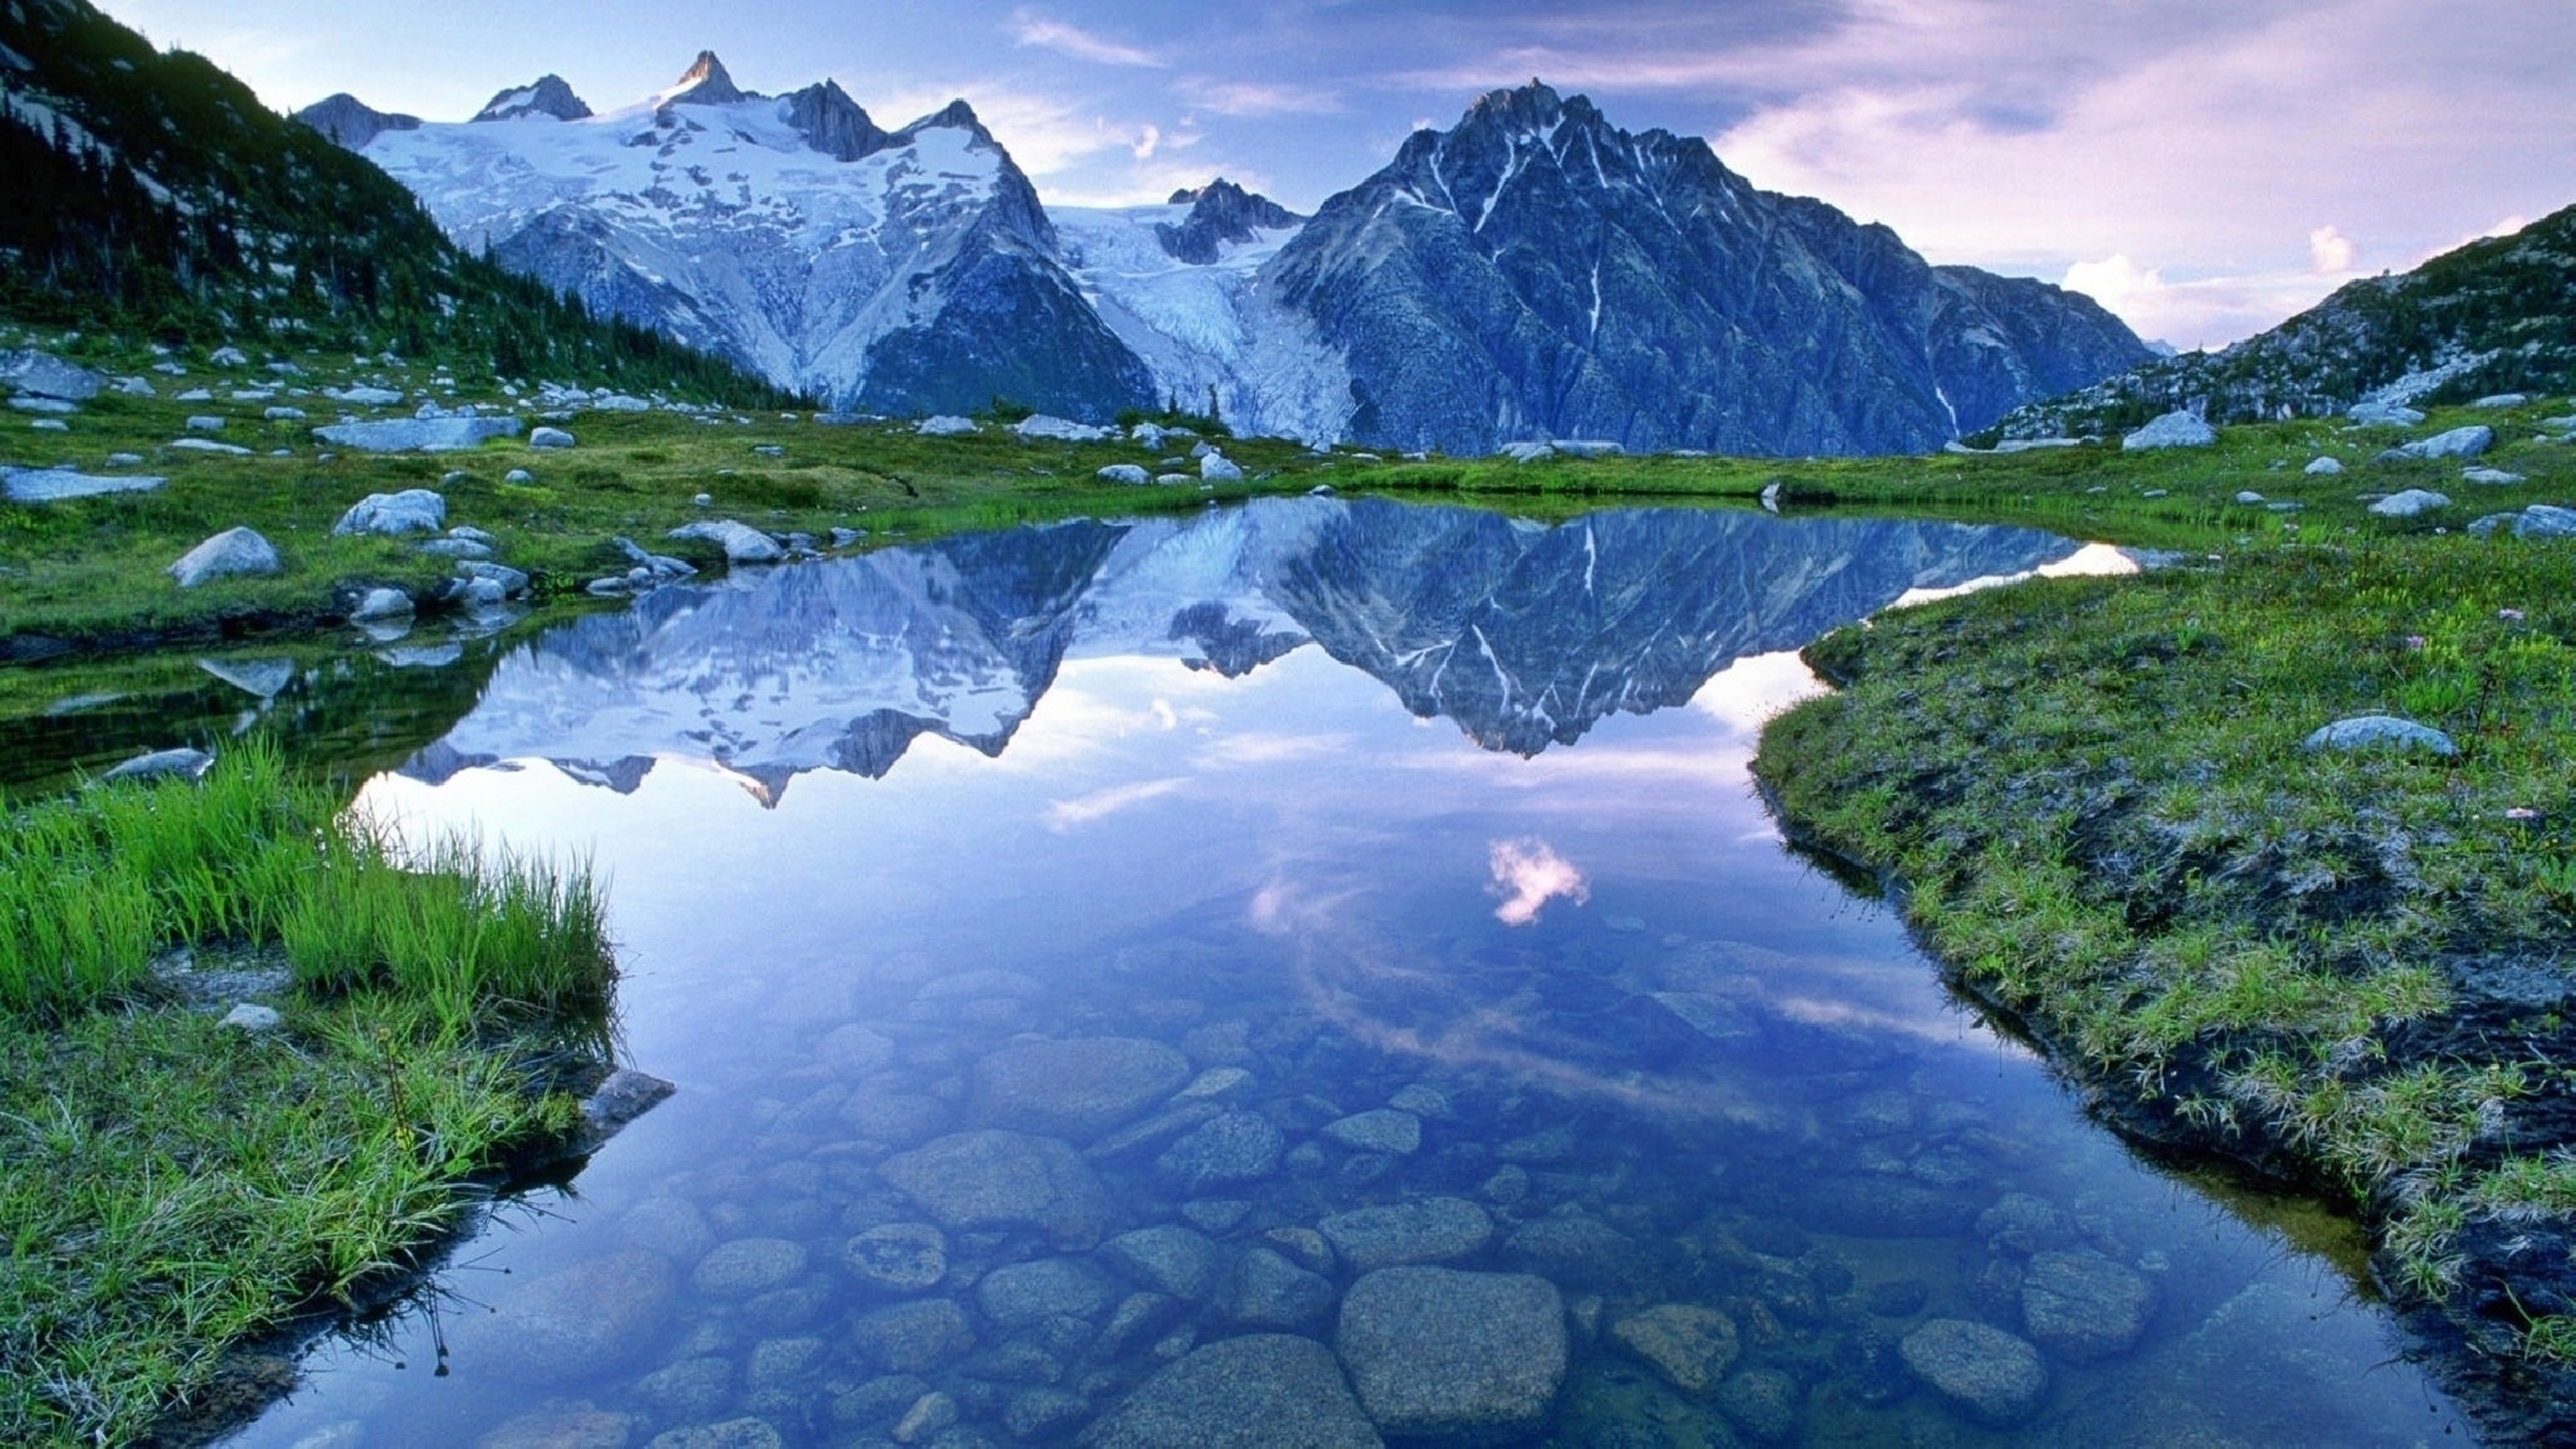 Best ideas about Beautiful Landscape Pictures . Save or Pin Beautiful Landscape Hd Wallpaper Water Mountains With Snow Now.